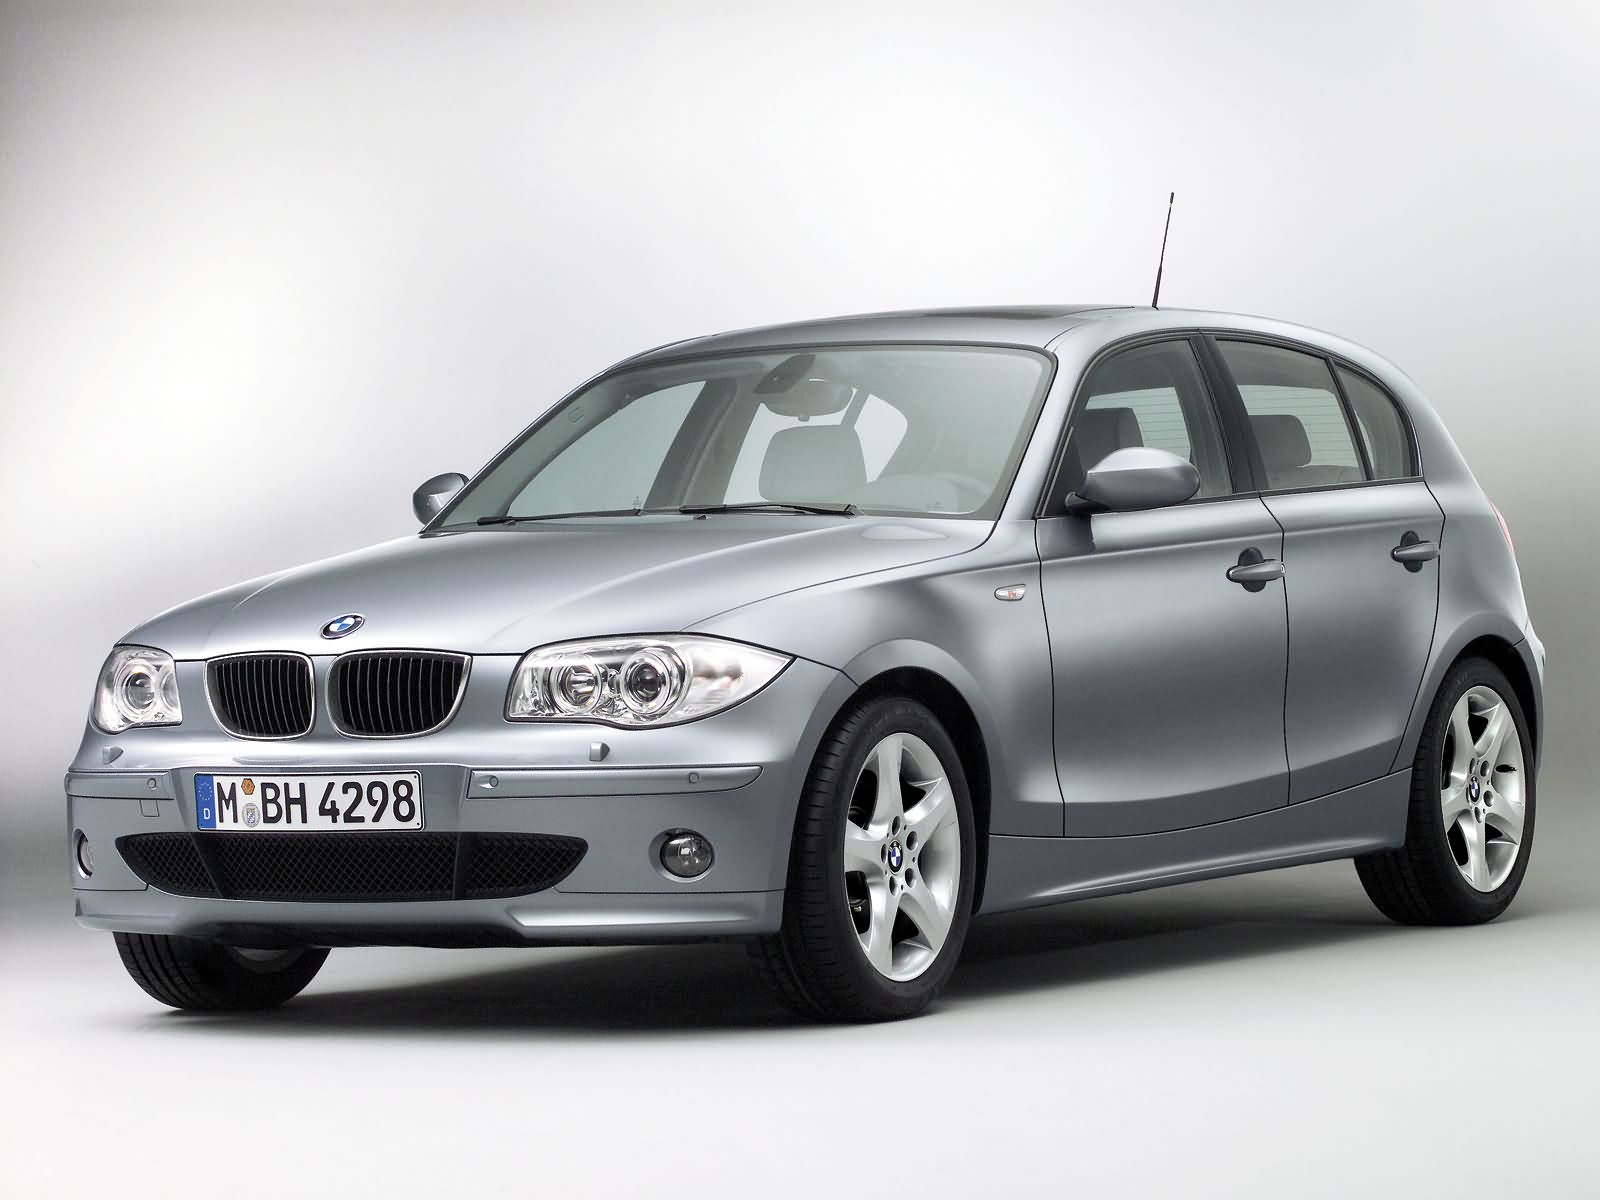 bmw 1 series 5 door e87 picture 15024 bmw photo. Black Bedroom Furniture Sets. Home Design Ideas